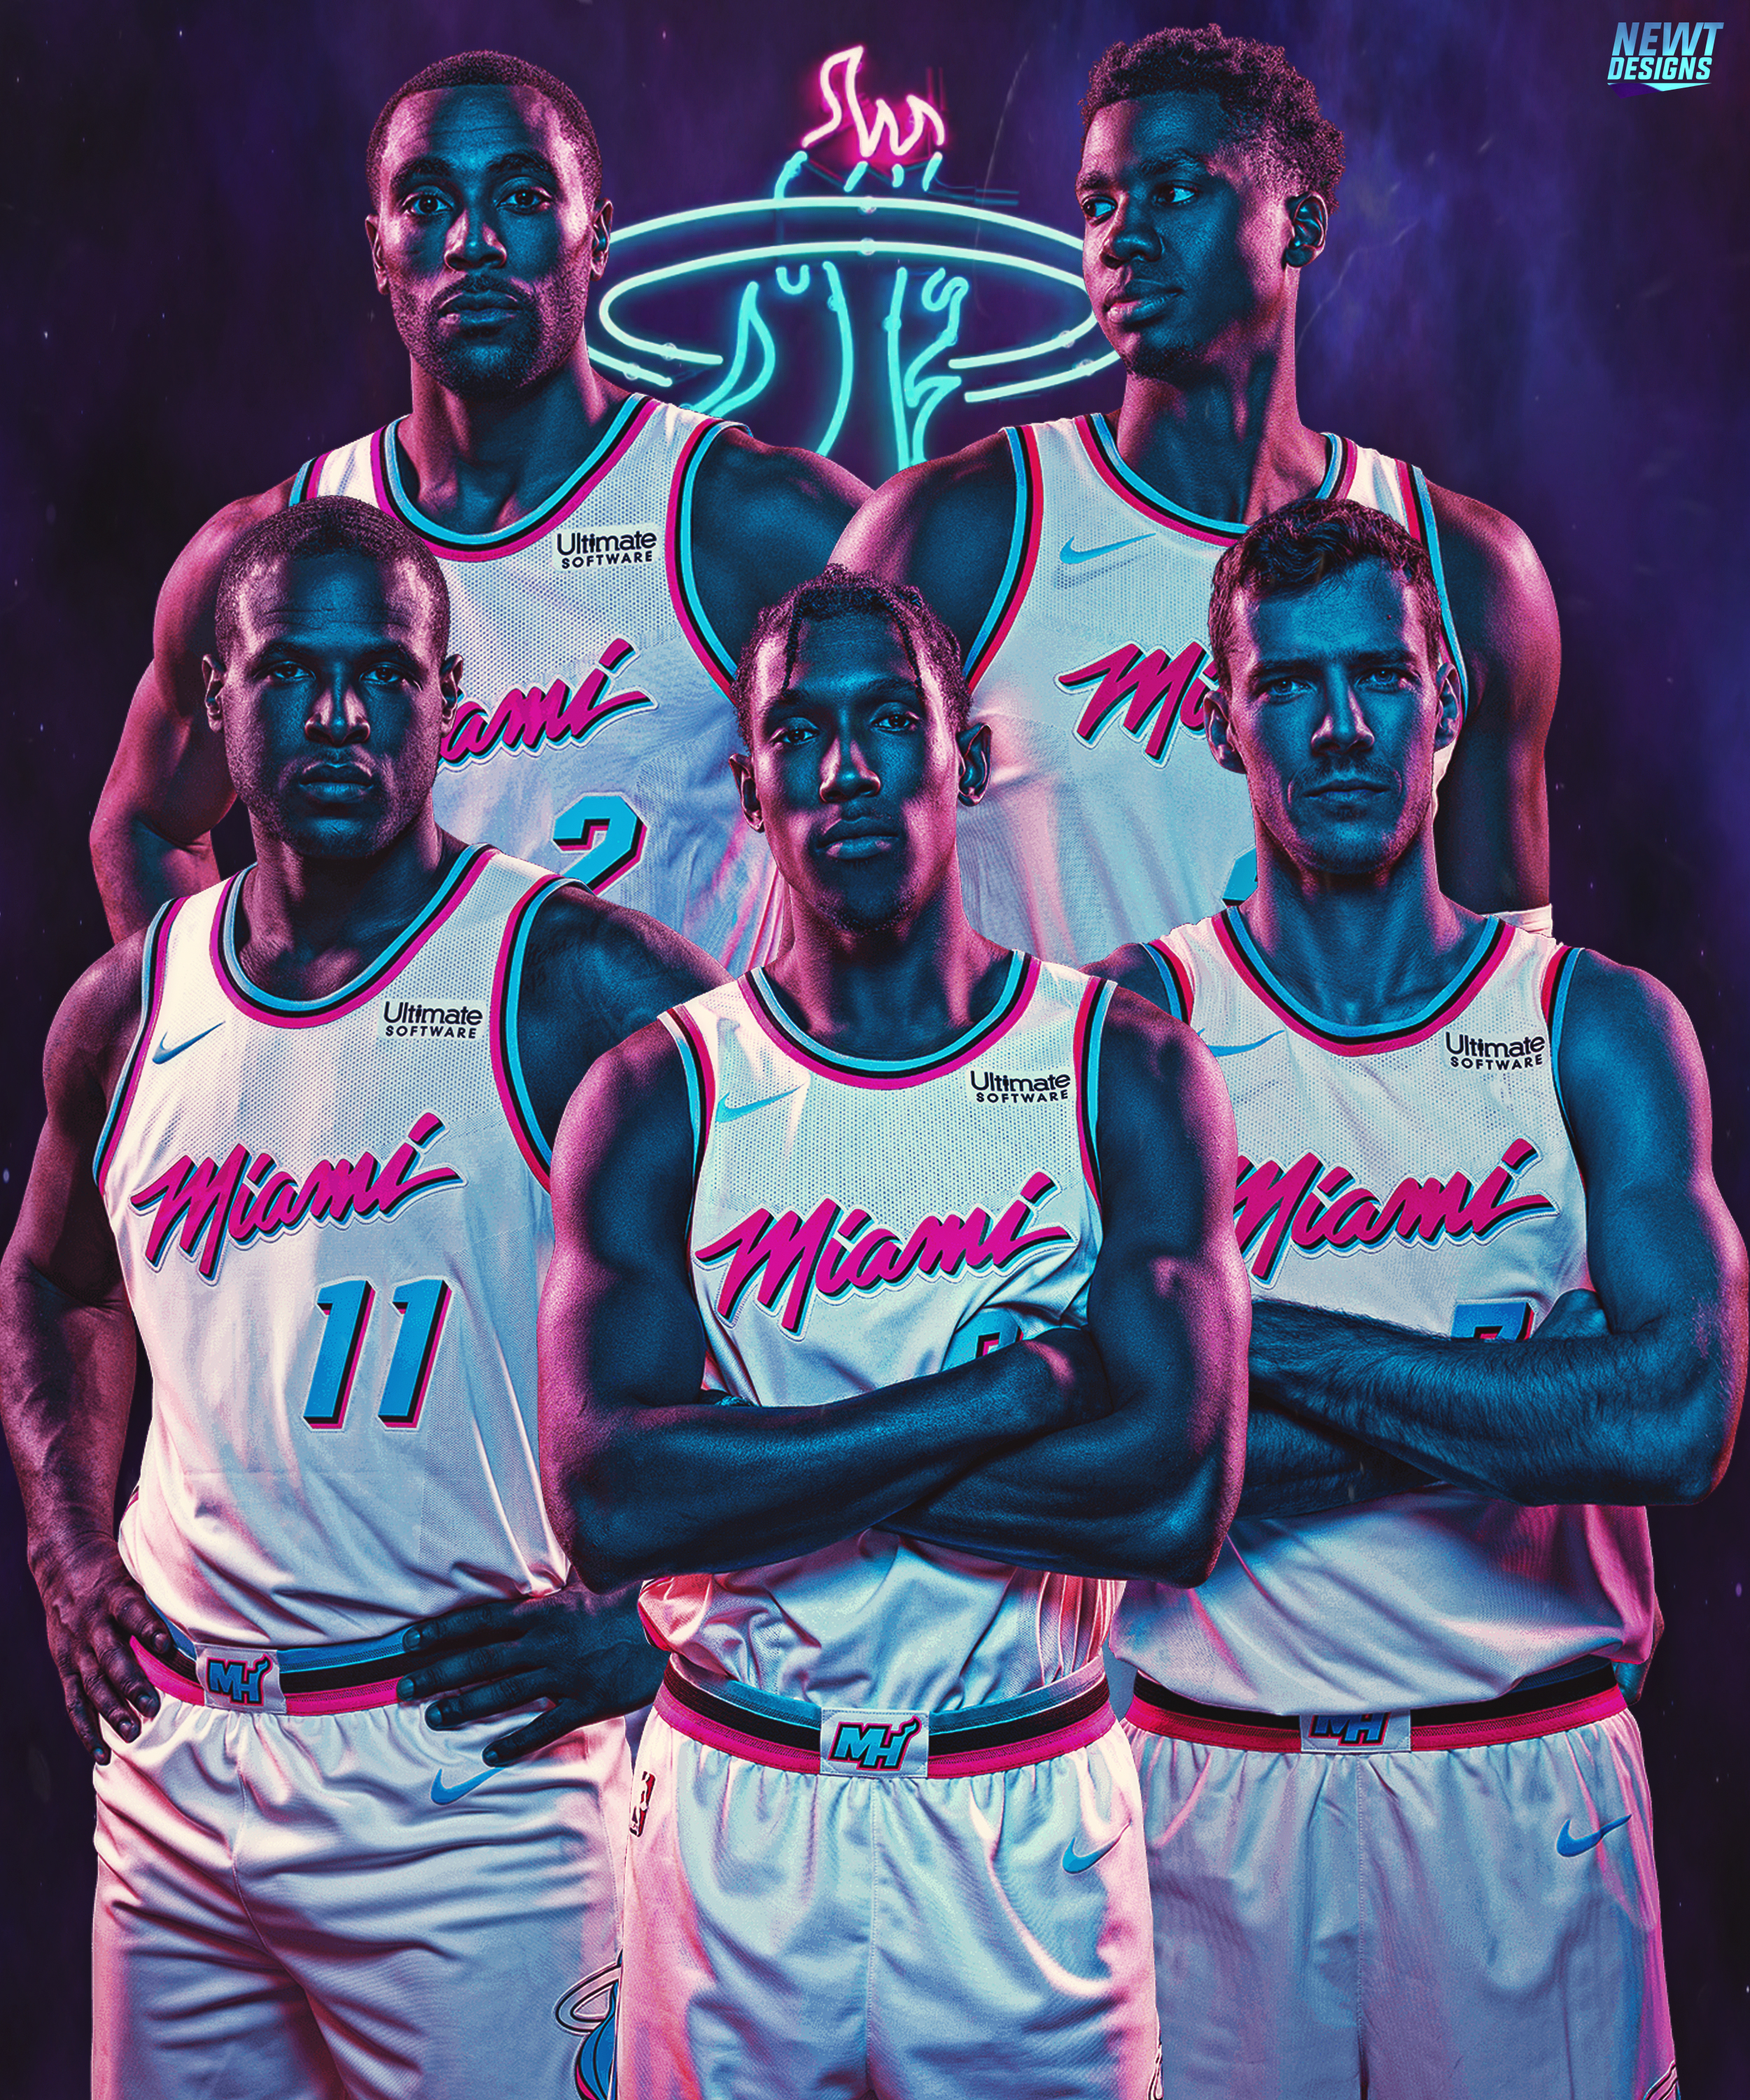 finest selection bb0b2 9cd94 Miami Heat Vice Jerseys by NewtDesigns on DeviantArt